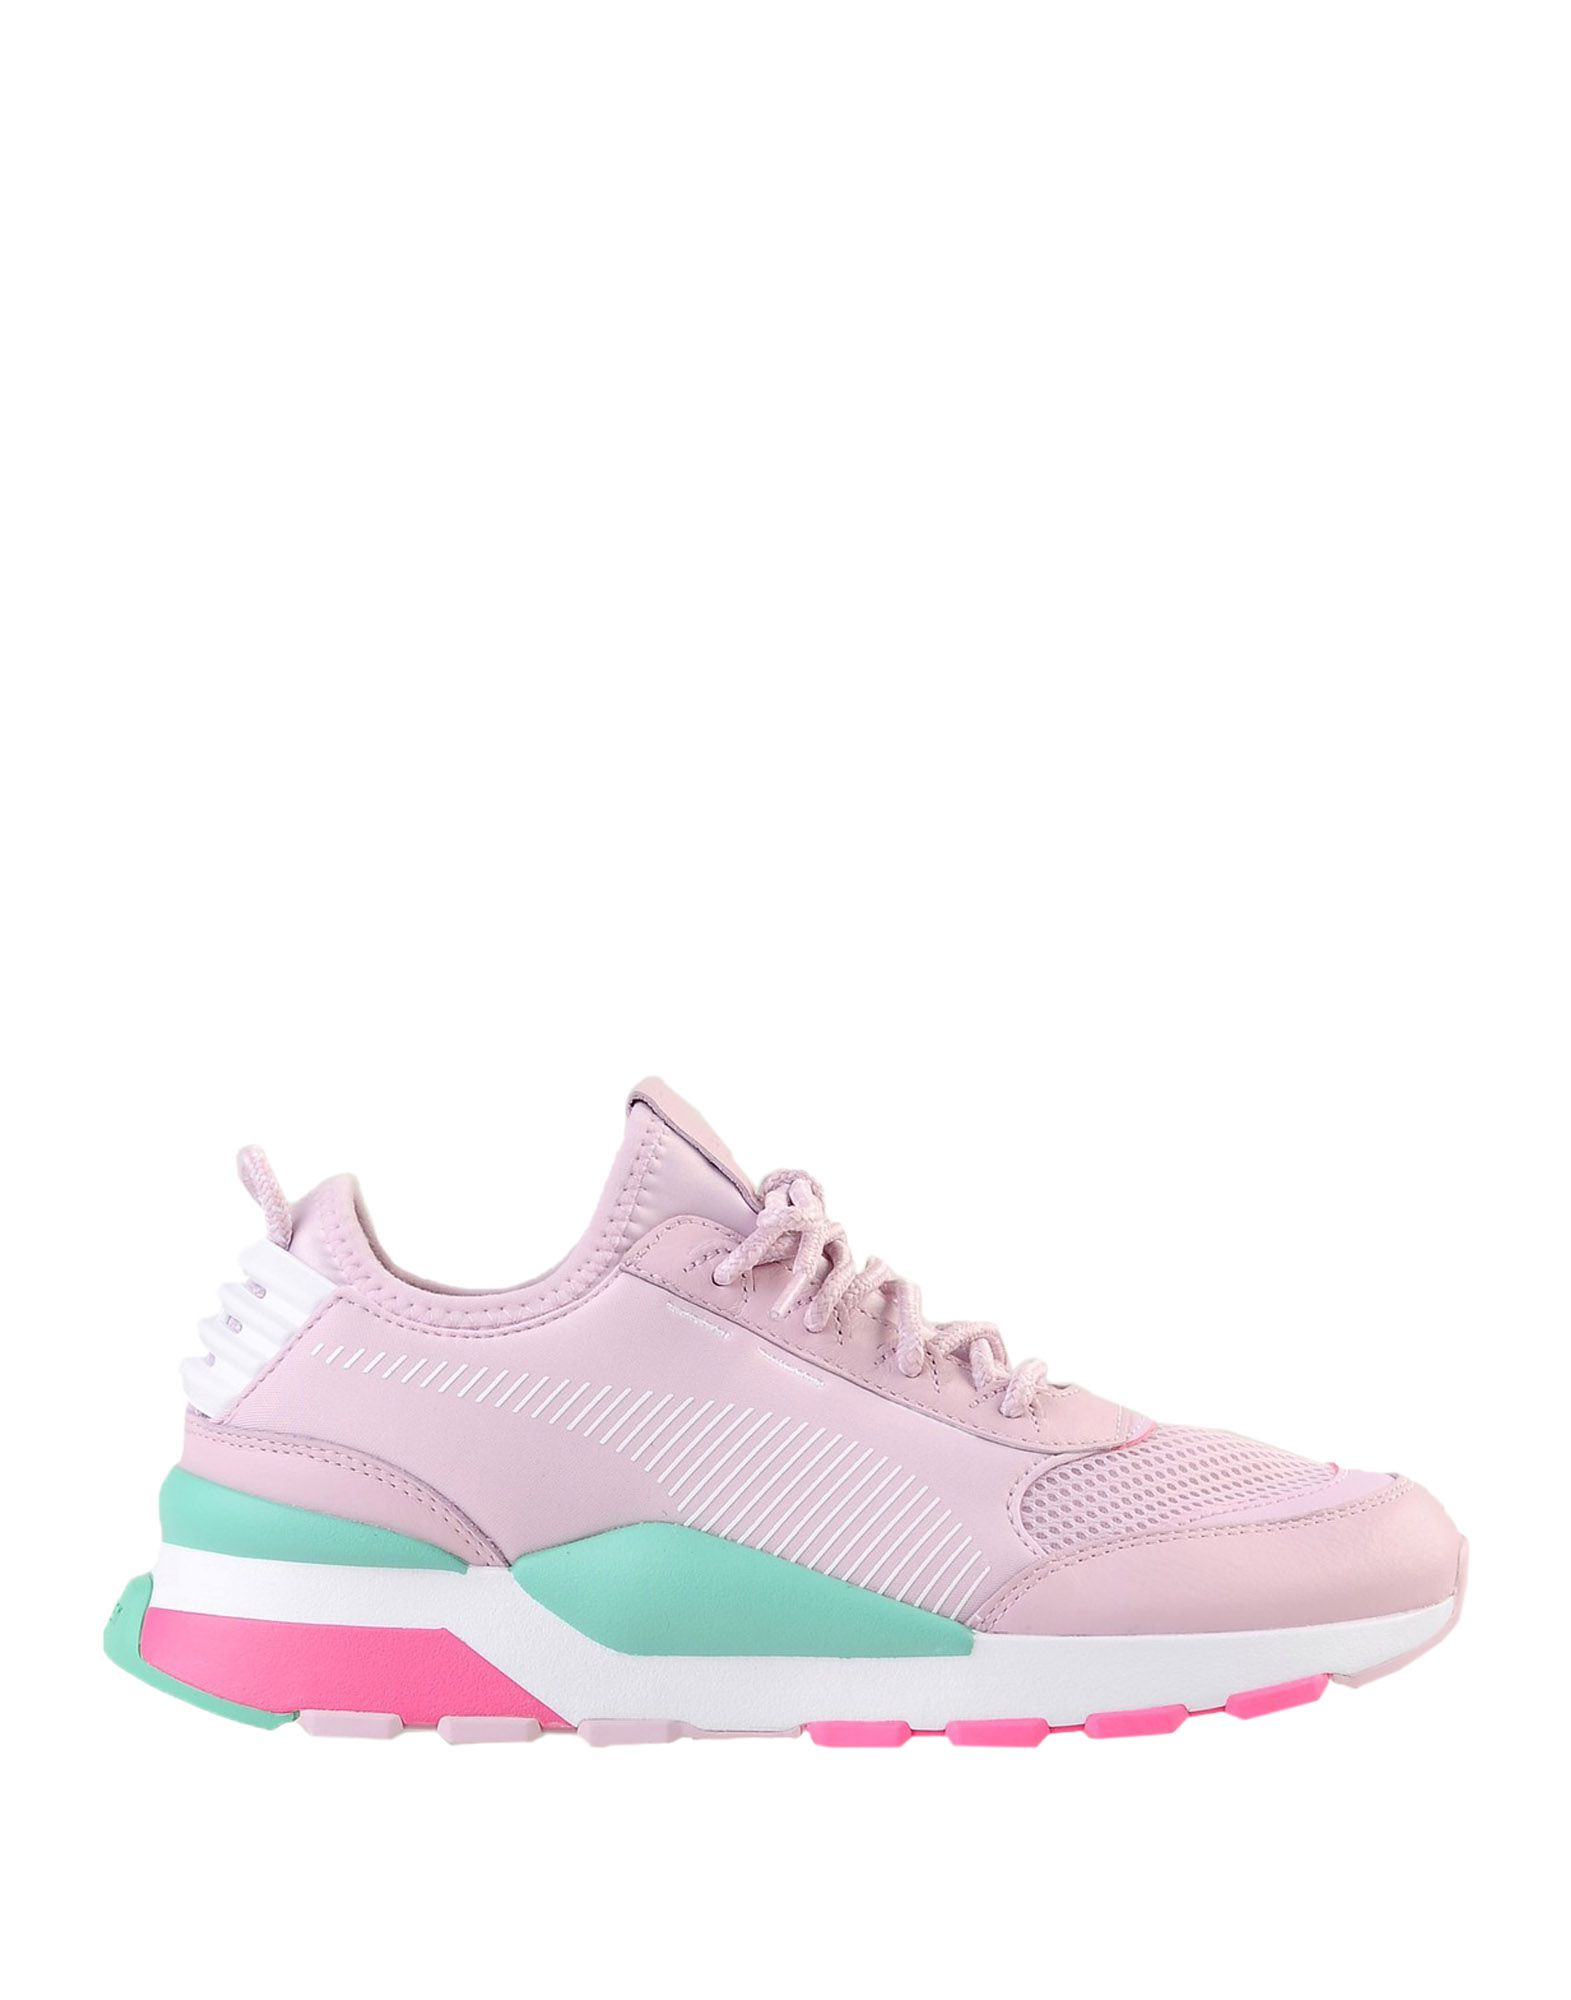 Scarpe da Ginnastica Puma Rs-0 Play Winsome Orchid-Biscay 11541416RO Gre - Donna - 11541416RO Orchid-Biscay f4f7a8